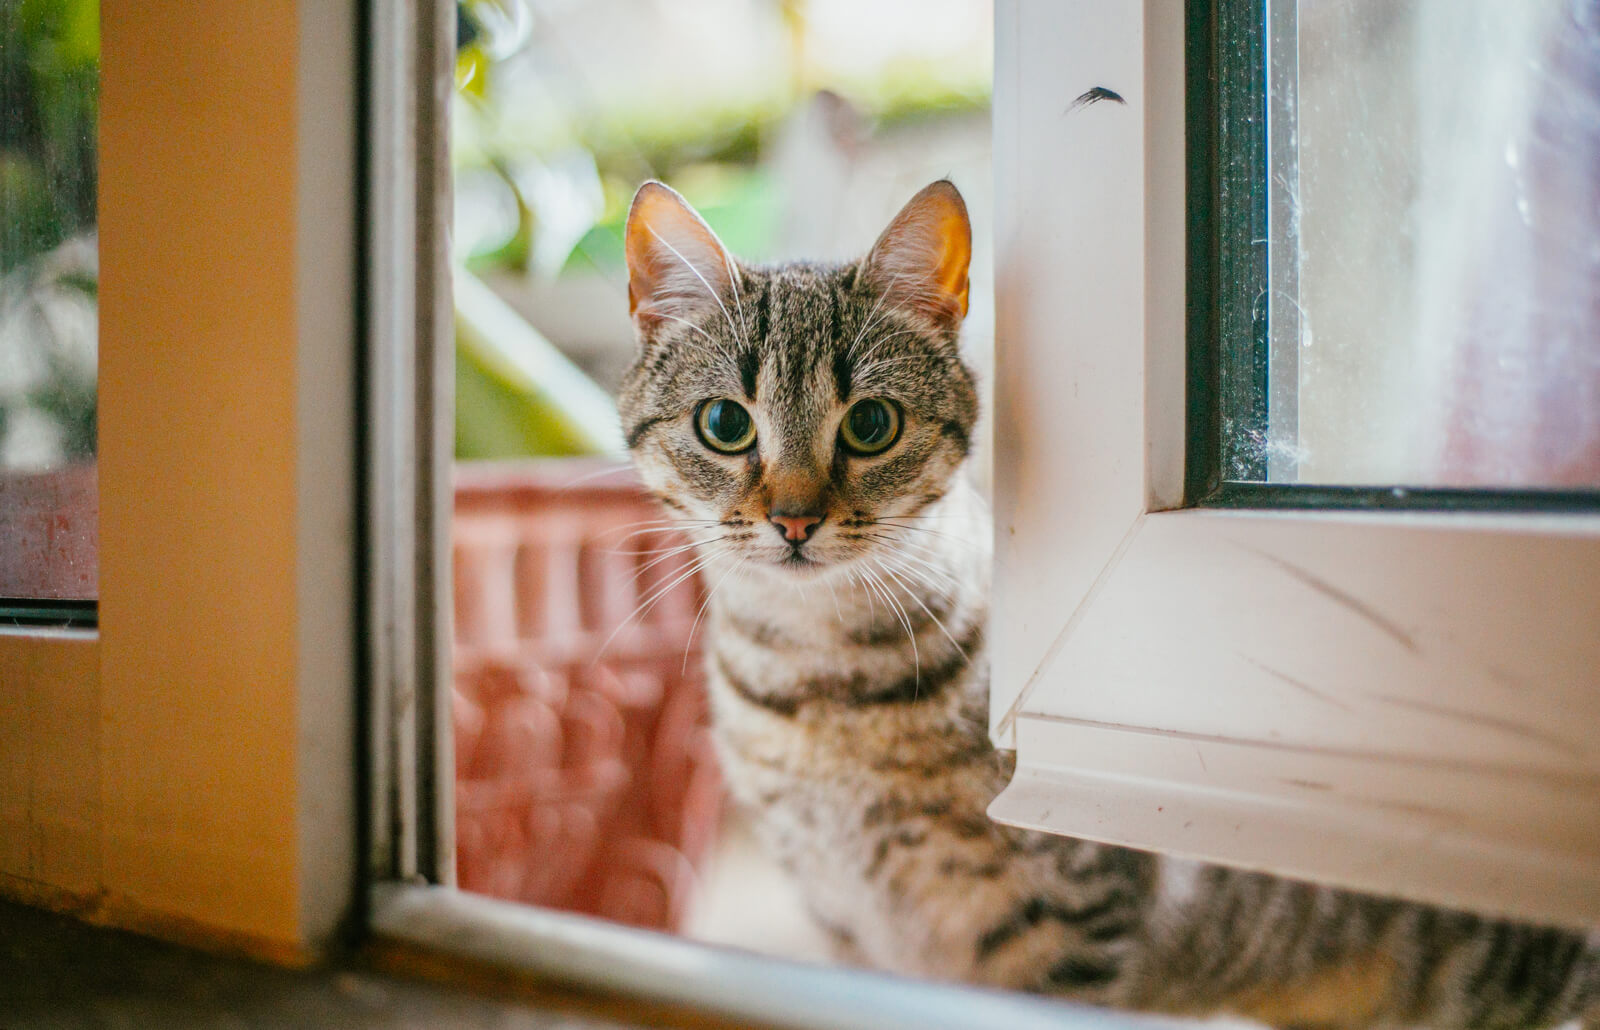 What To Do If You Find A Stray Cat Lovetoknow